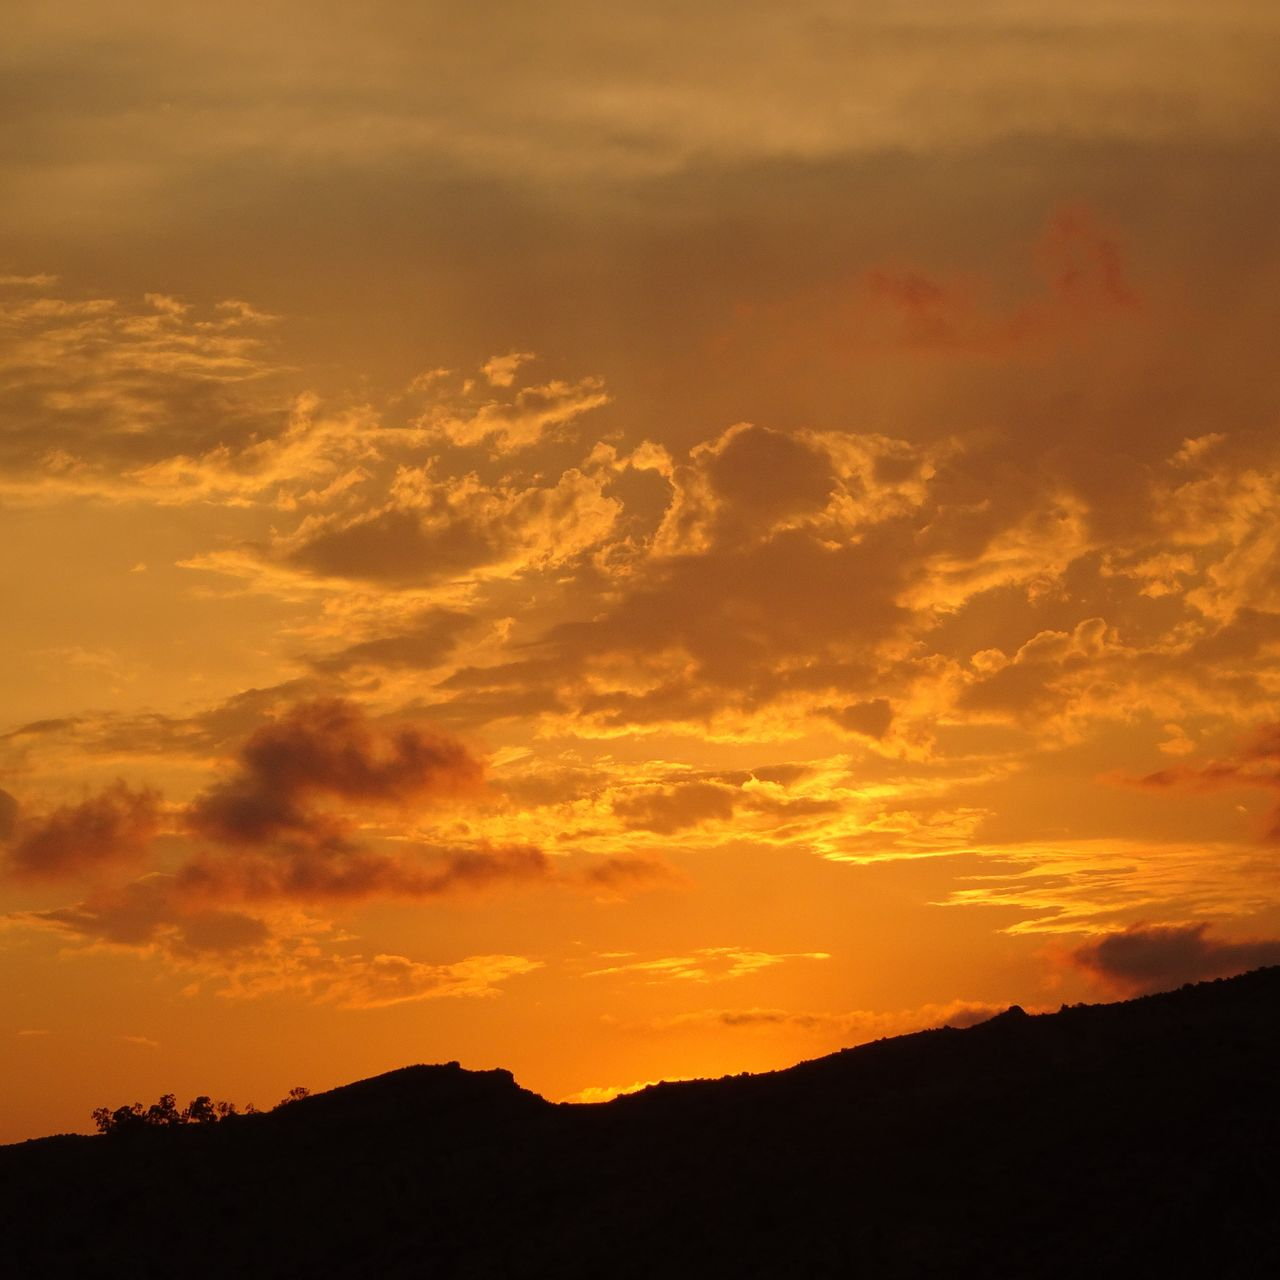 sunset, sky, cloud - sky, beauty in nature, orange color, scenics - nature, silhouette, tranquil scene, tranquility, idyllic, nature, non-urban scene, no people, dramatic sky, environment, low angle view, outdoors, mountain, landscape, awe